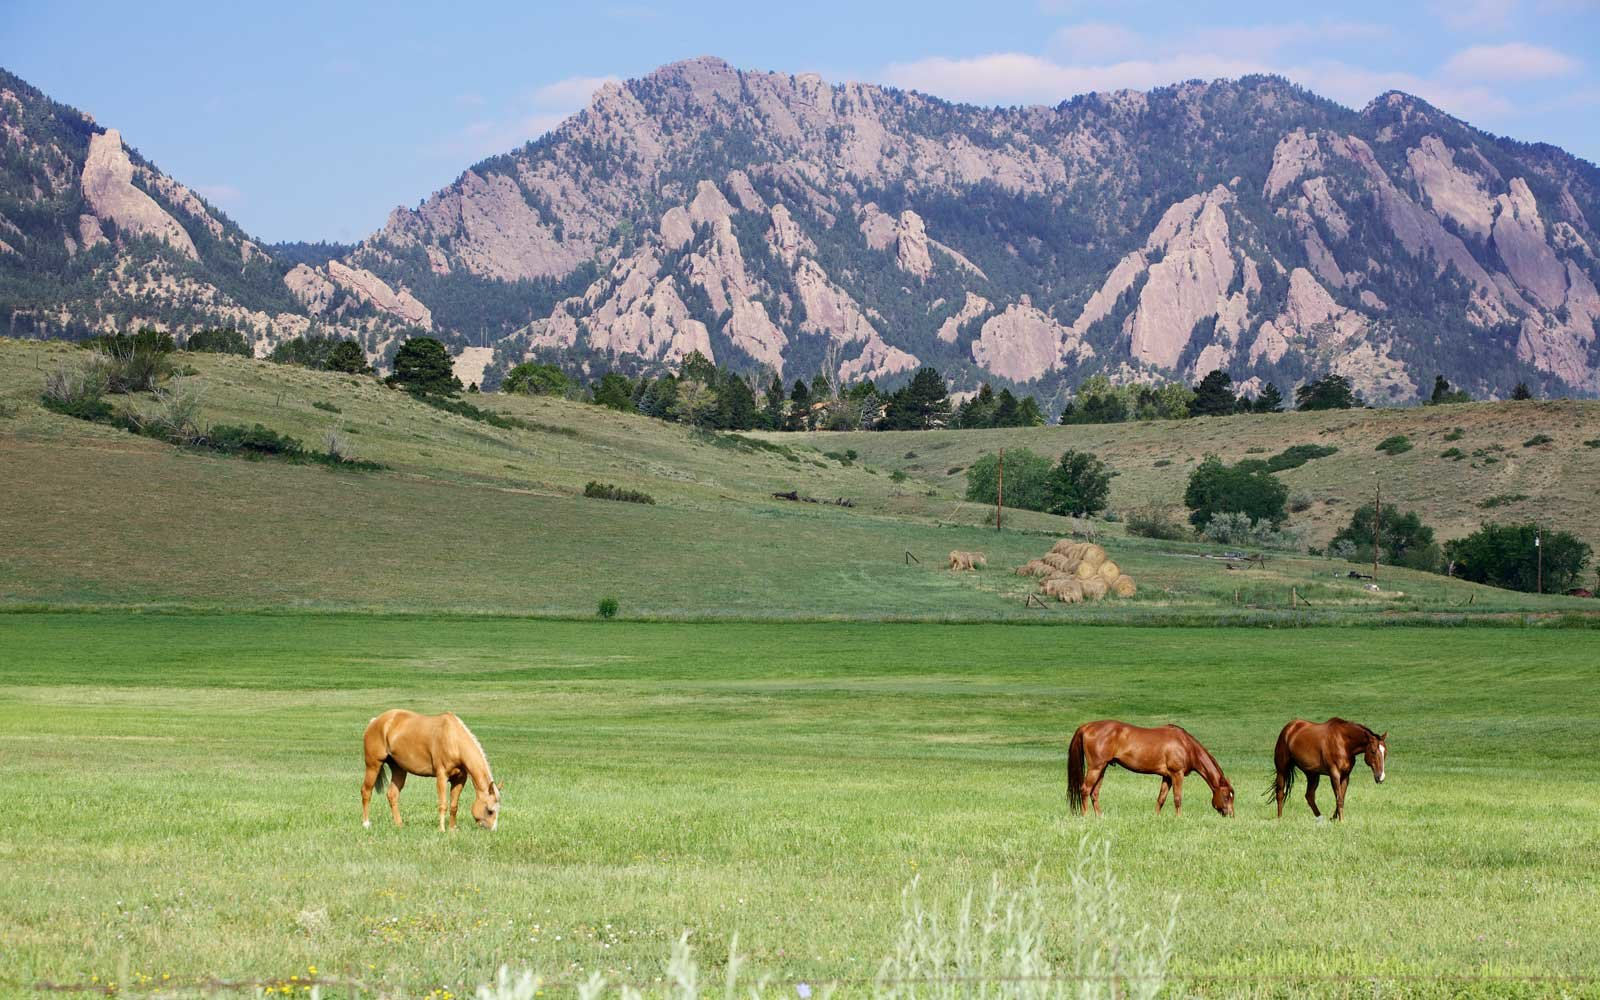 Three horses grazing on a western mountain ranch in Boulder Colorado.